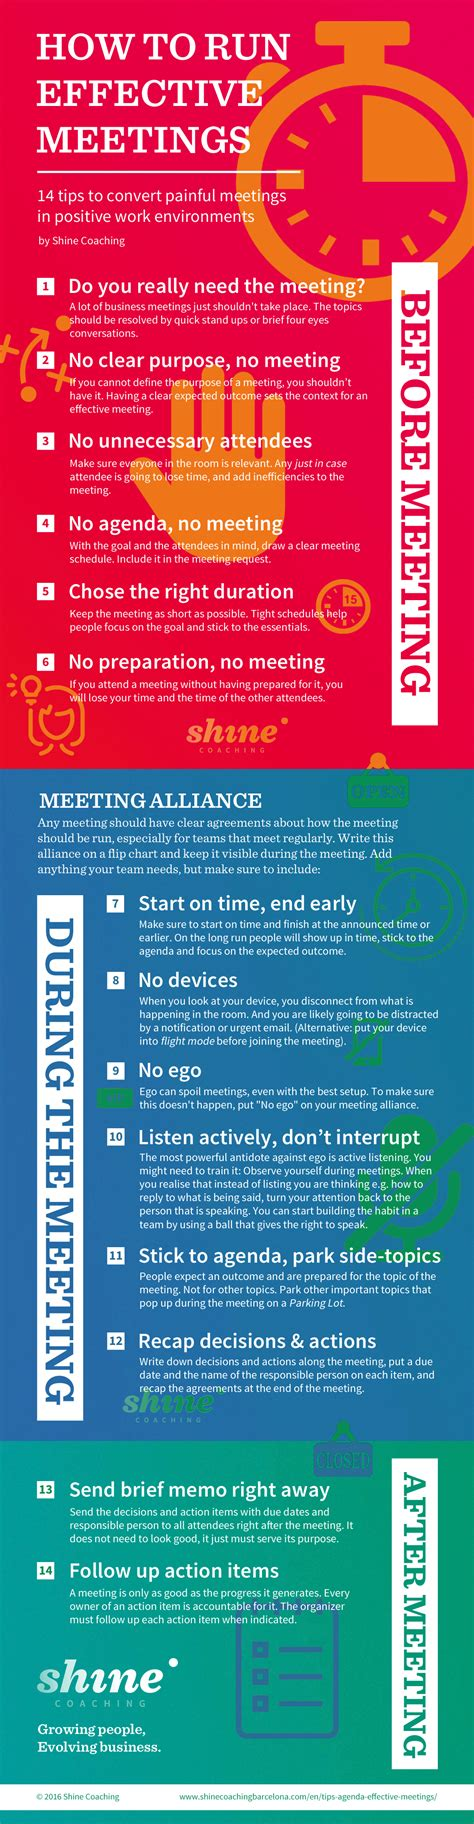 Effective Meetings 14 Tips For Meetings People Will Like